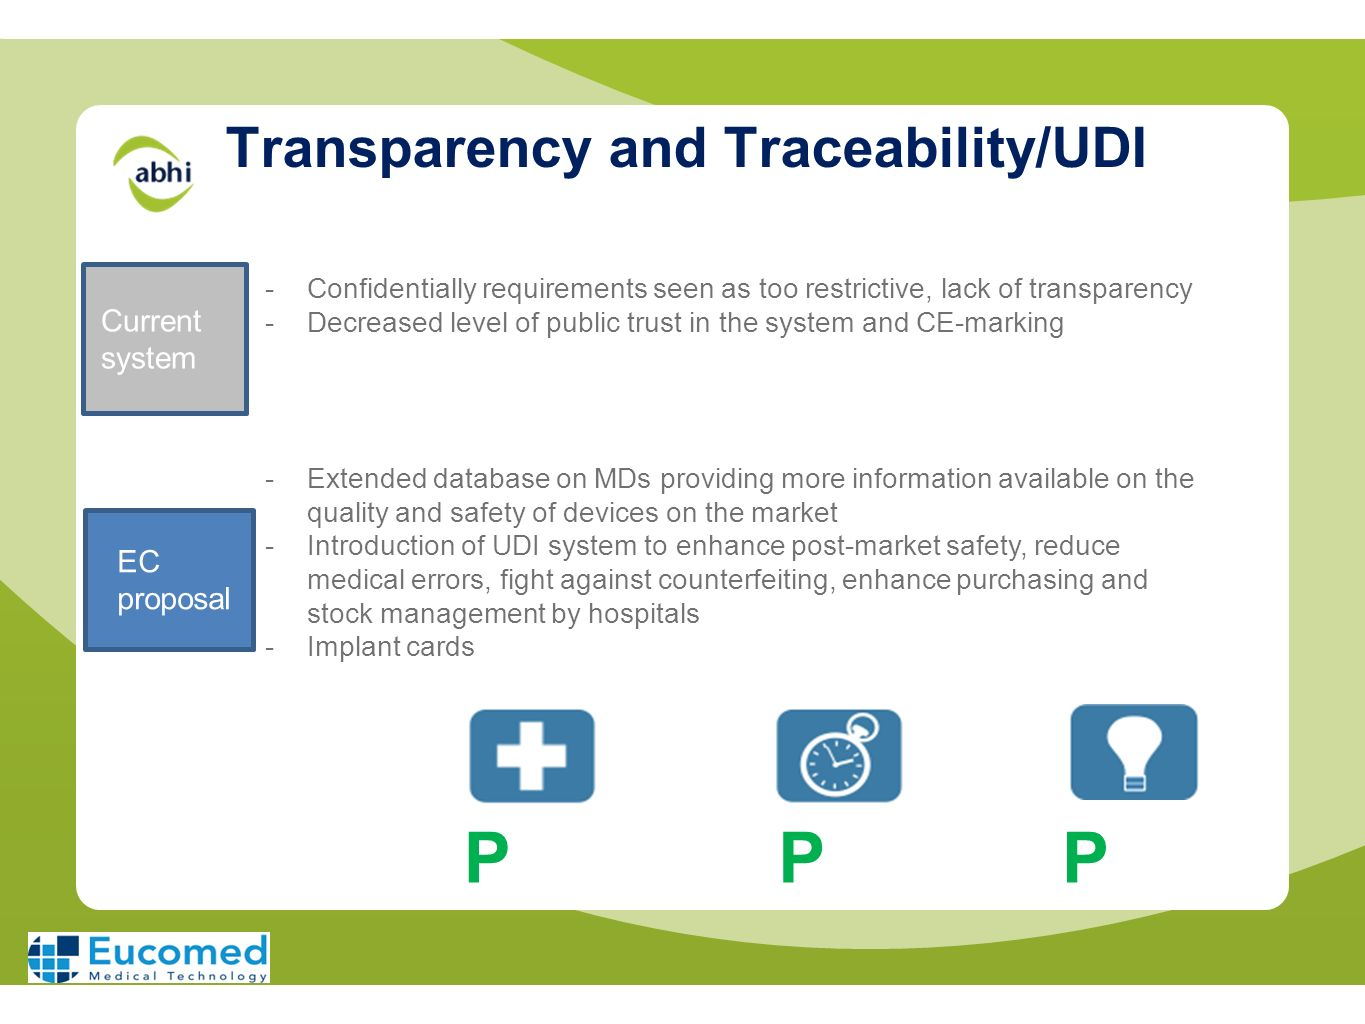 Transparency and Traceability/UDI